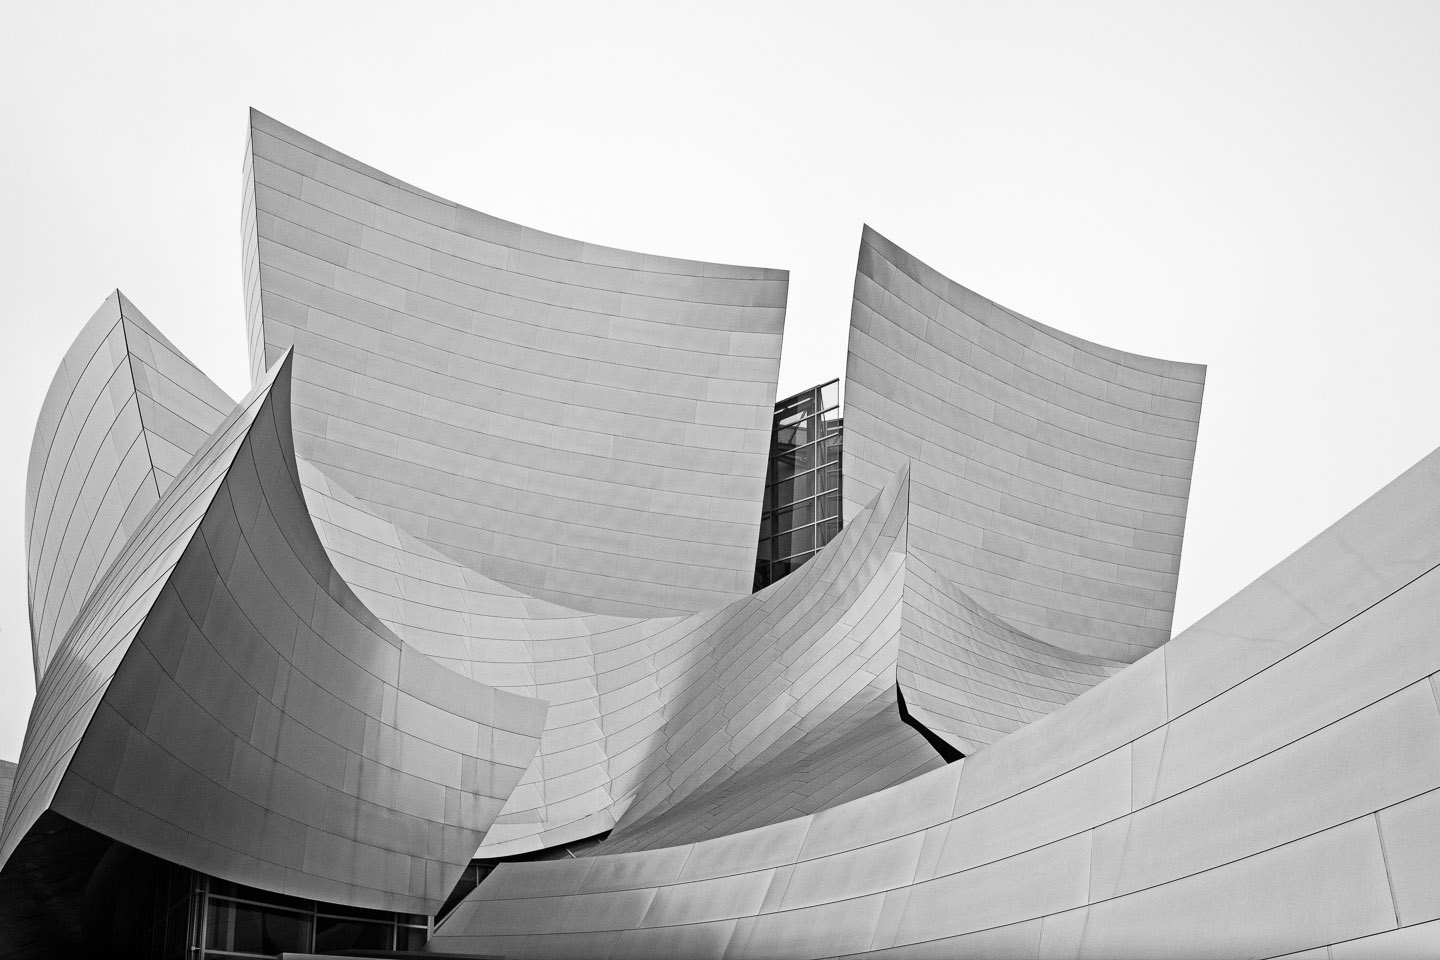 exterior aluminum panels drape the organic structure of the Walt Disney Concert Hall, designed by Frank Gehry, photographed by Jacob Rosenfeld